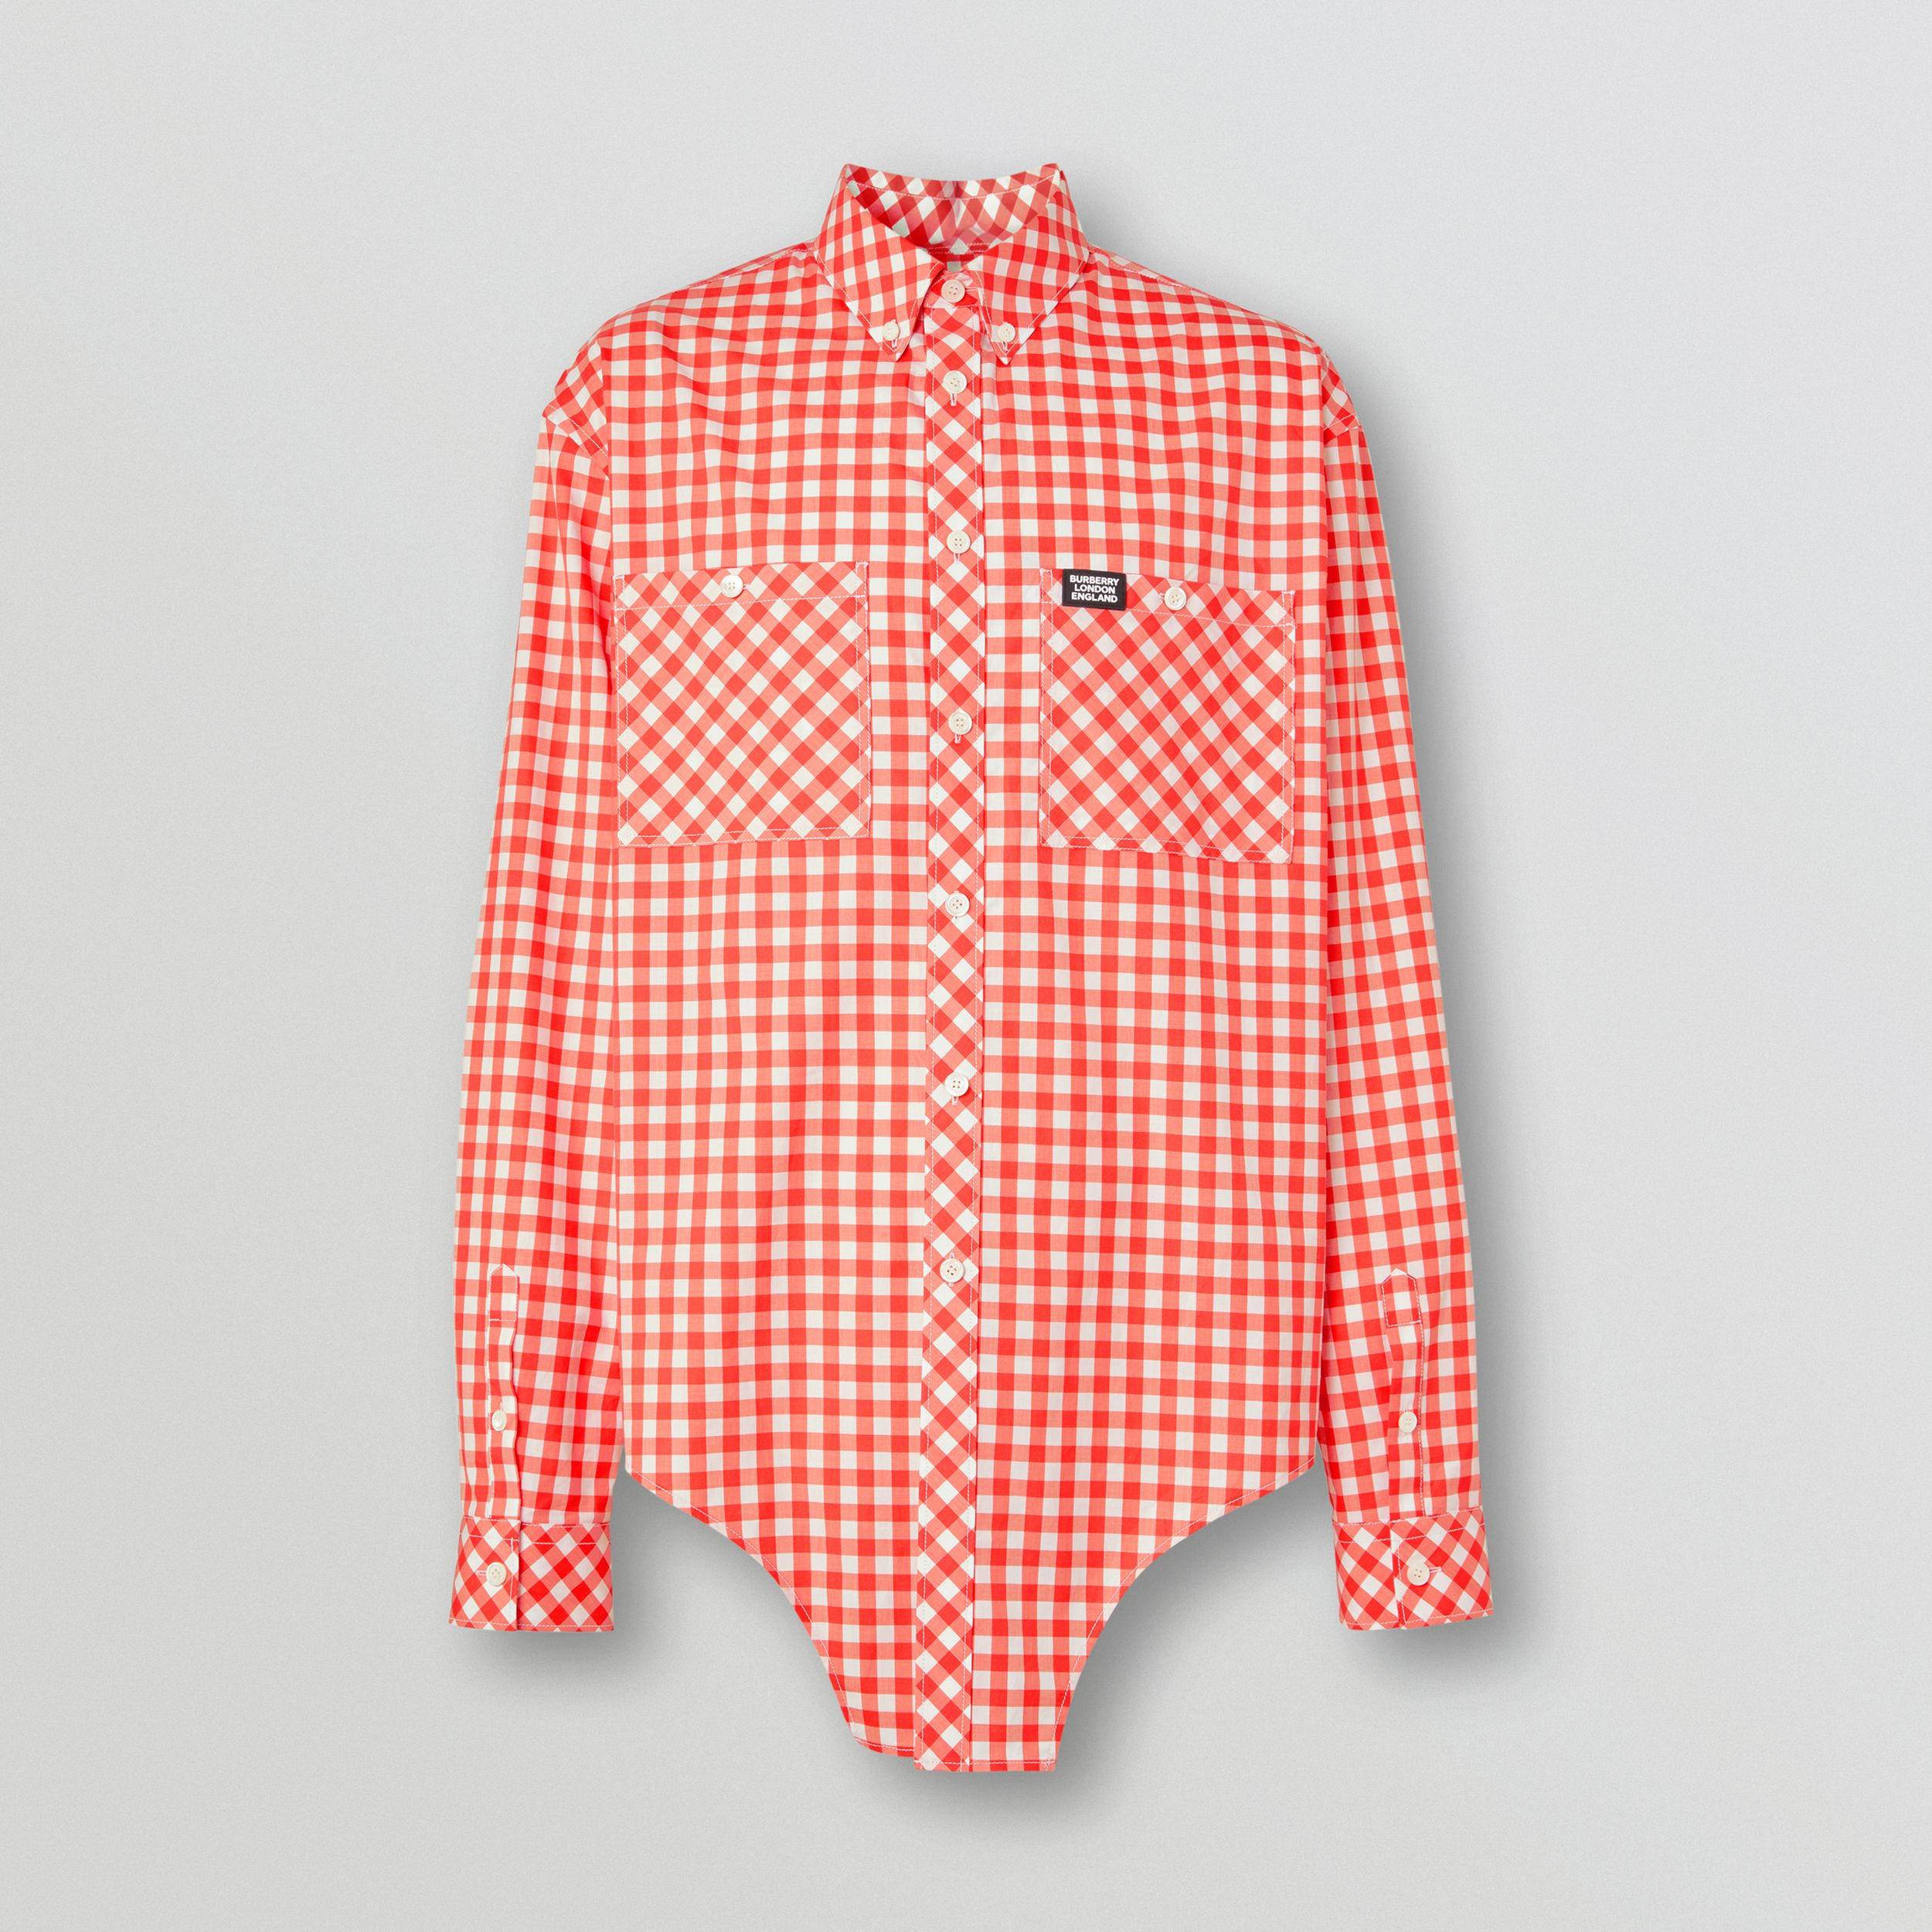 Cut-out Hem Gingham Cotton Oversized Shirt in Red - Men | Burberry United Kingdom - 4